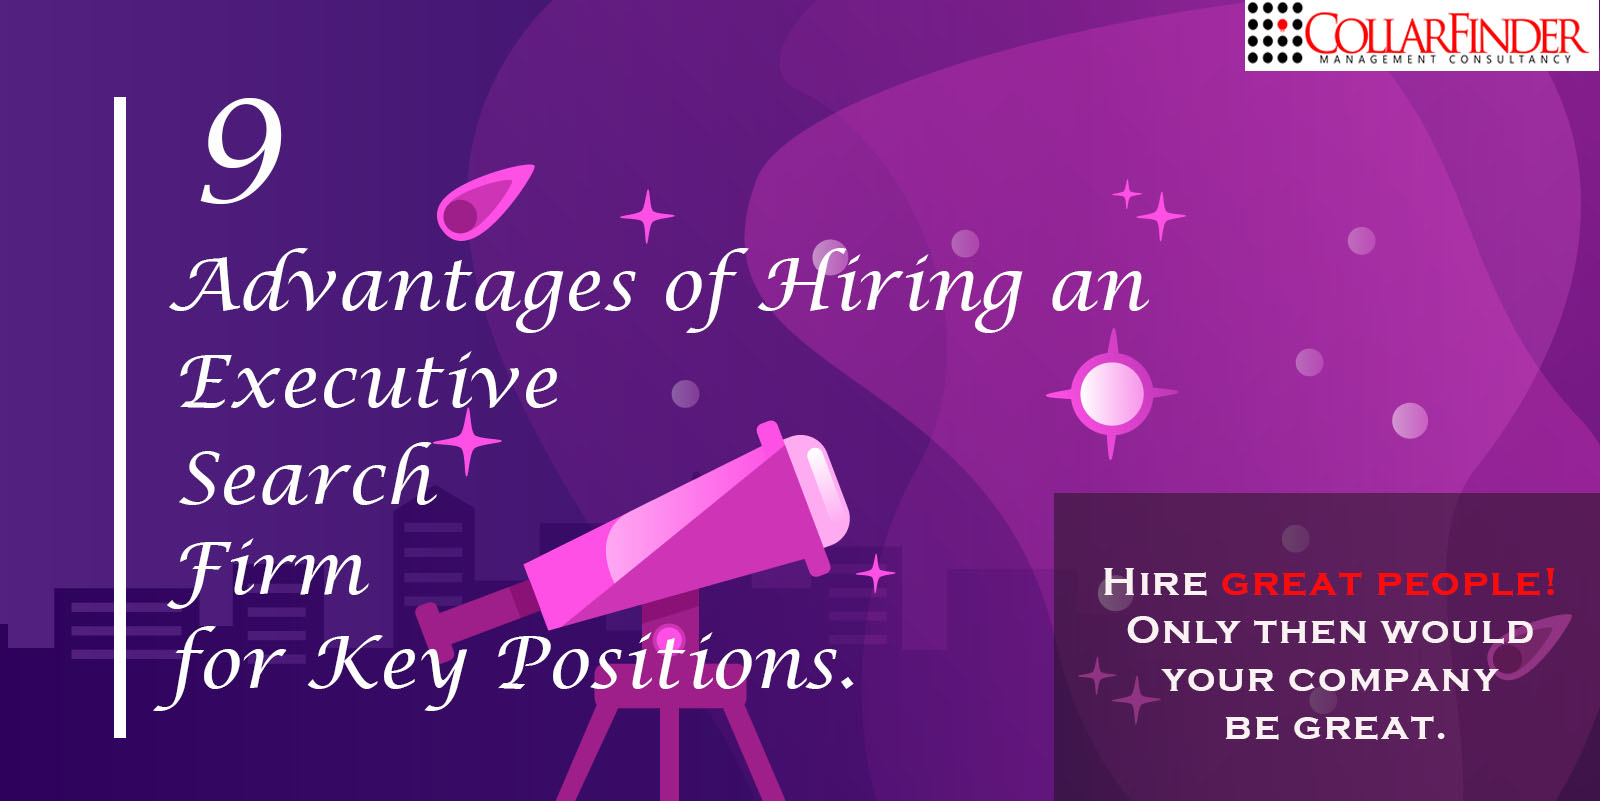 9 Advantages of Hiring an Executive Search Firm for Key Positions